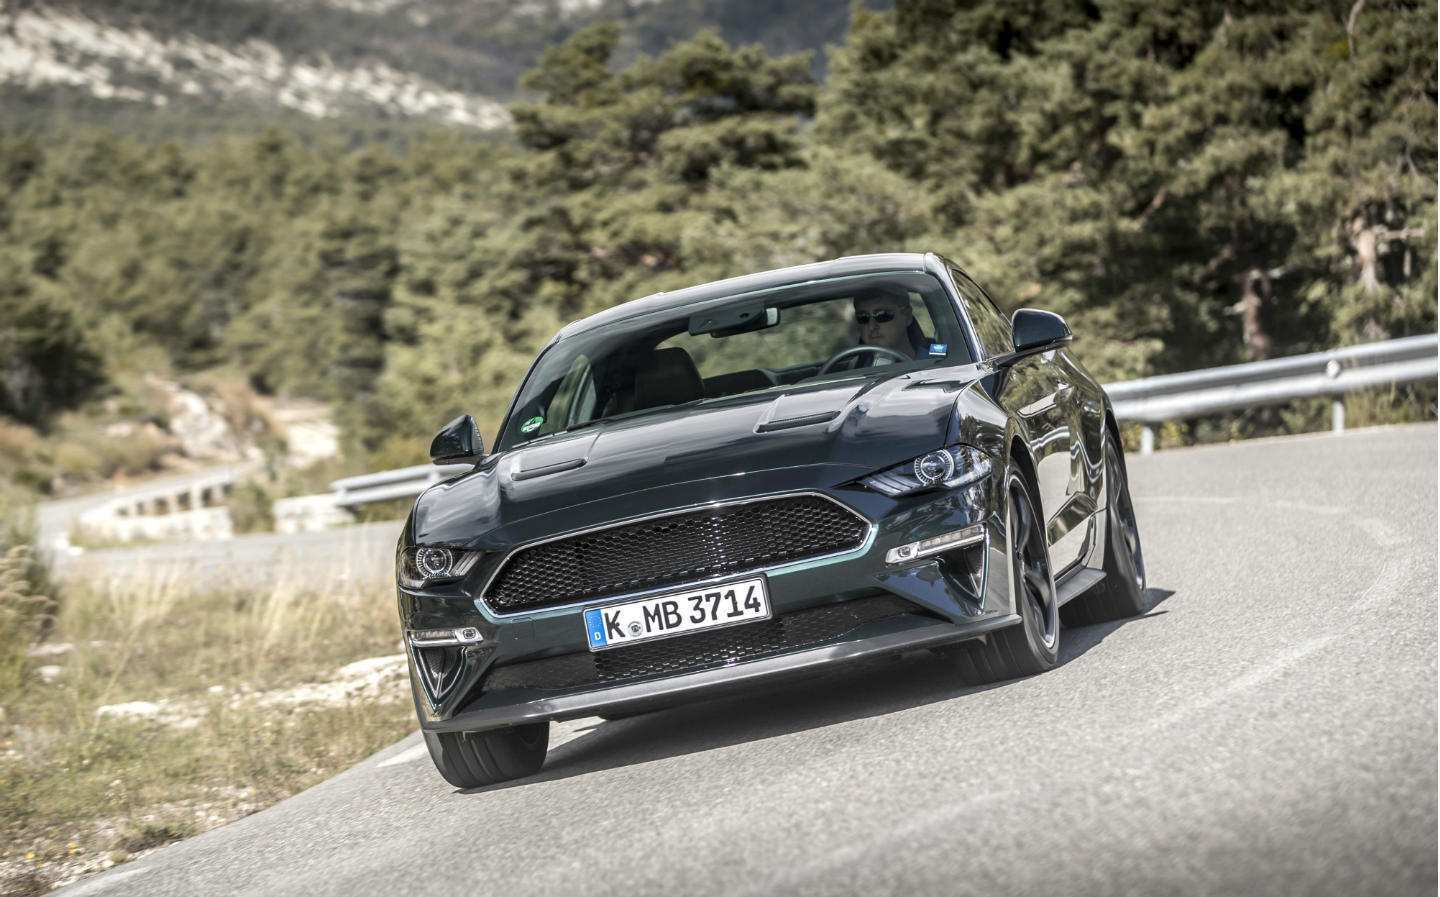 74 Best Review The Ford Bullitt 2019 For Sale First Drive Price Performance And Review Photos for The Ford Bullitt 2019 For Sale First Drive Price Performance And Review